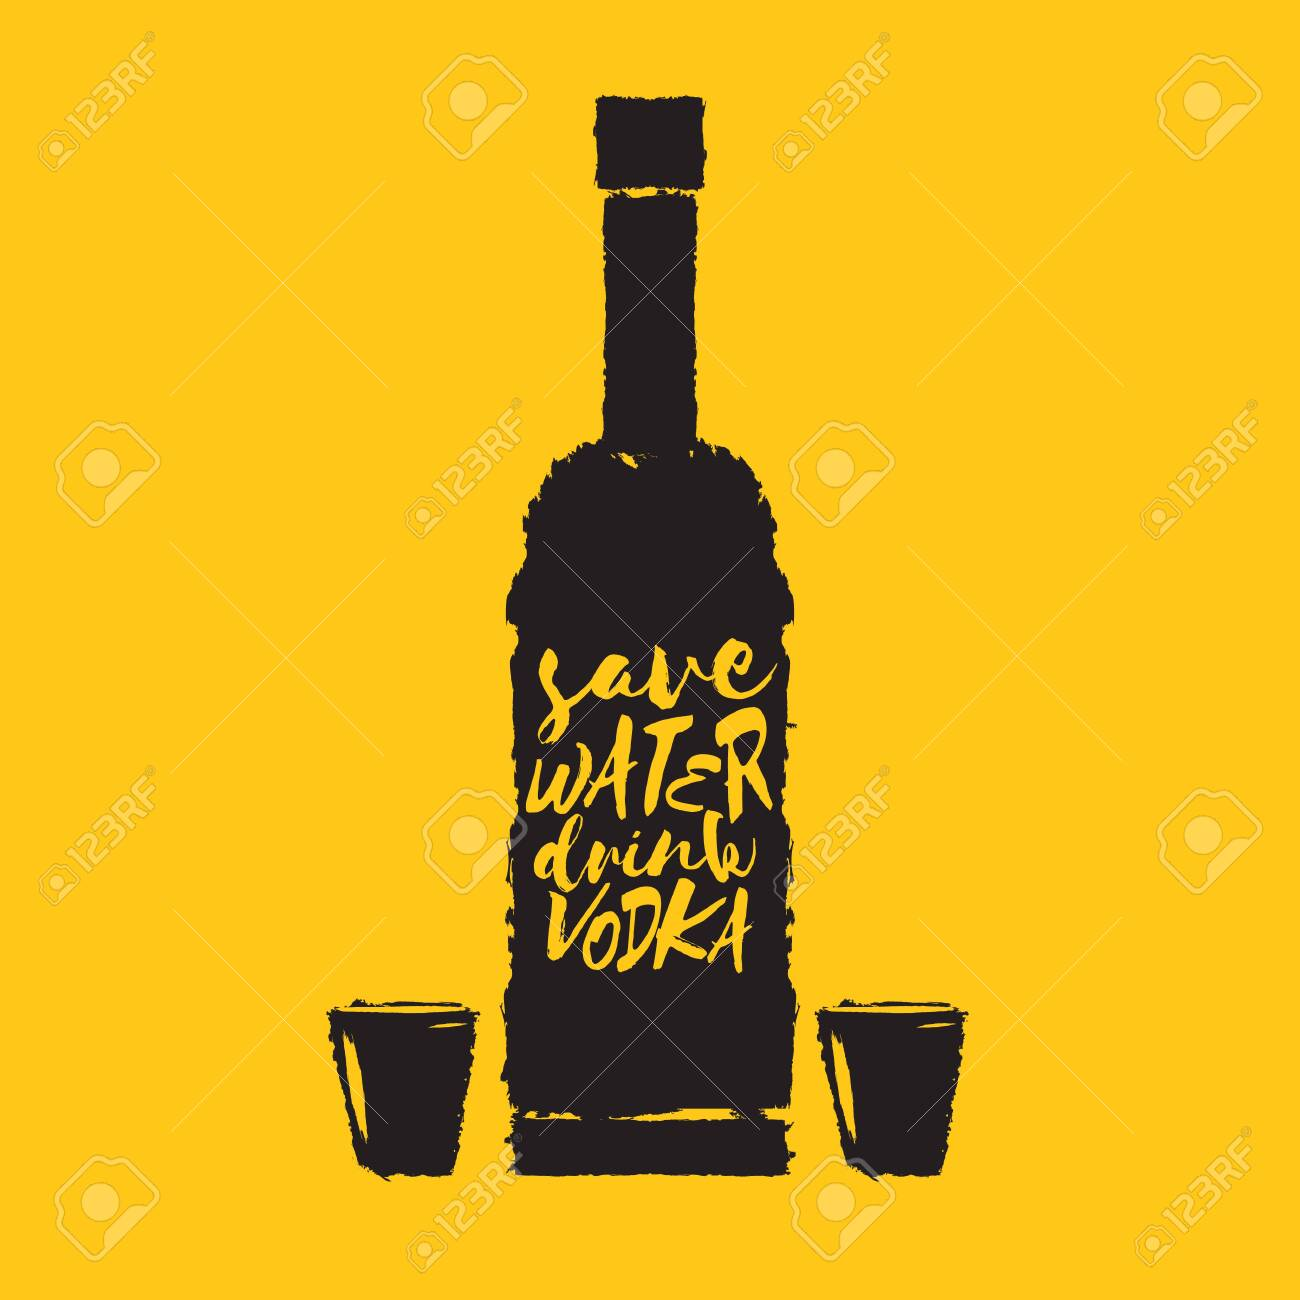 save water drink vodka funny quotes about vodka glass bottle